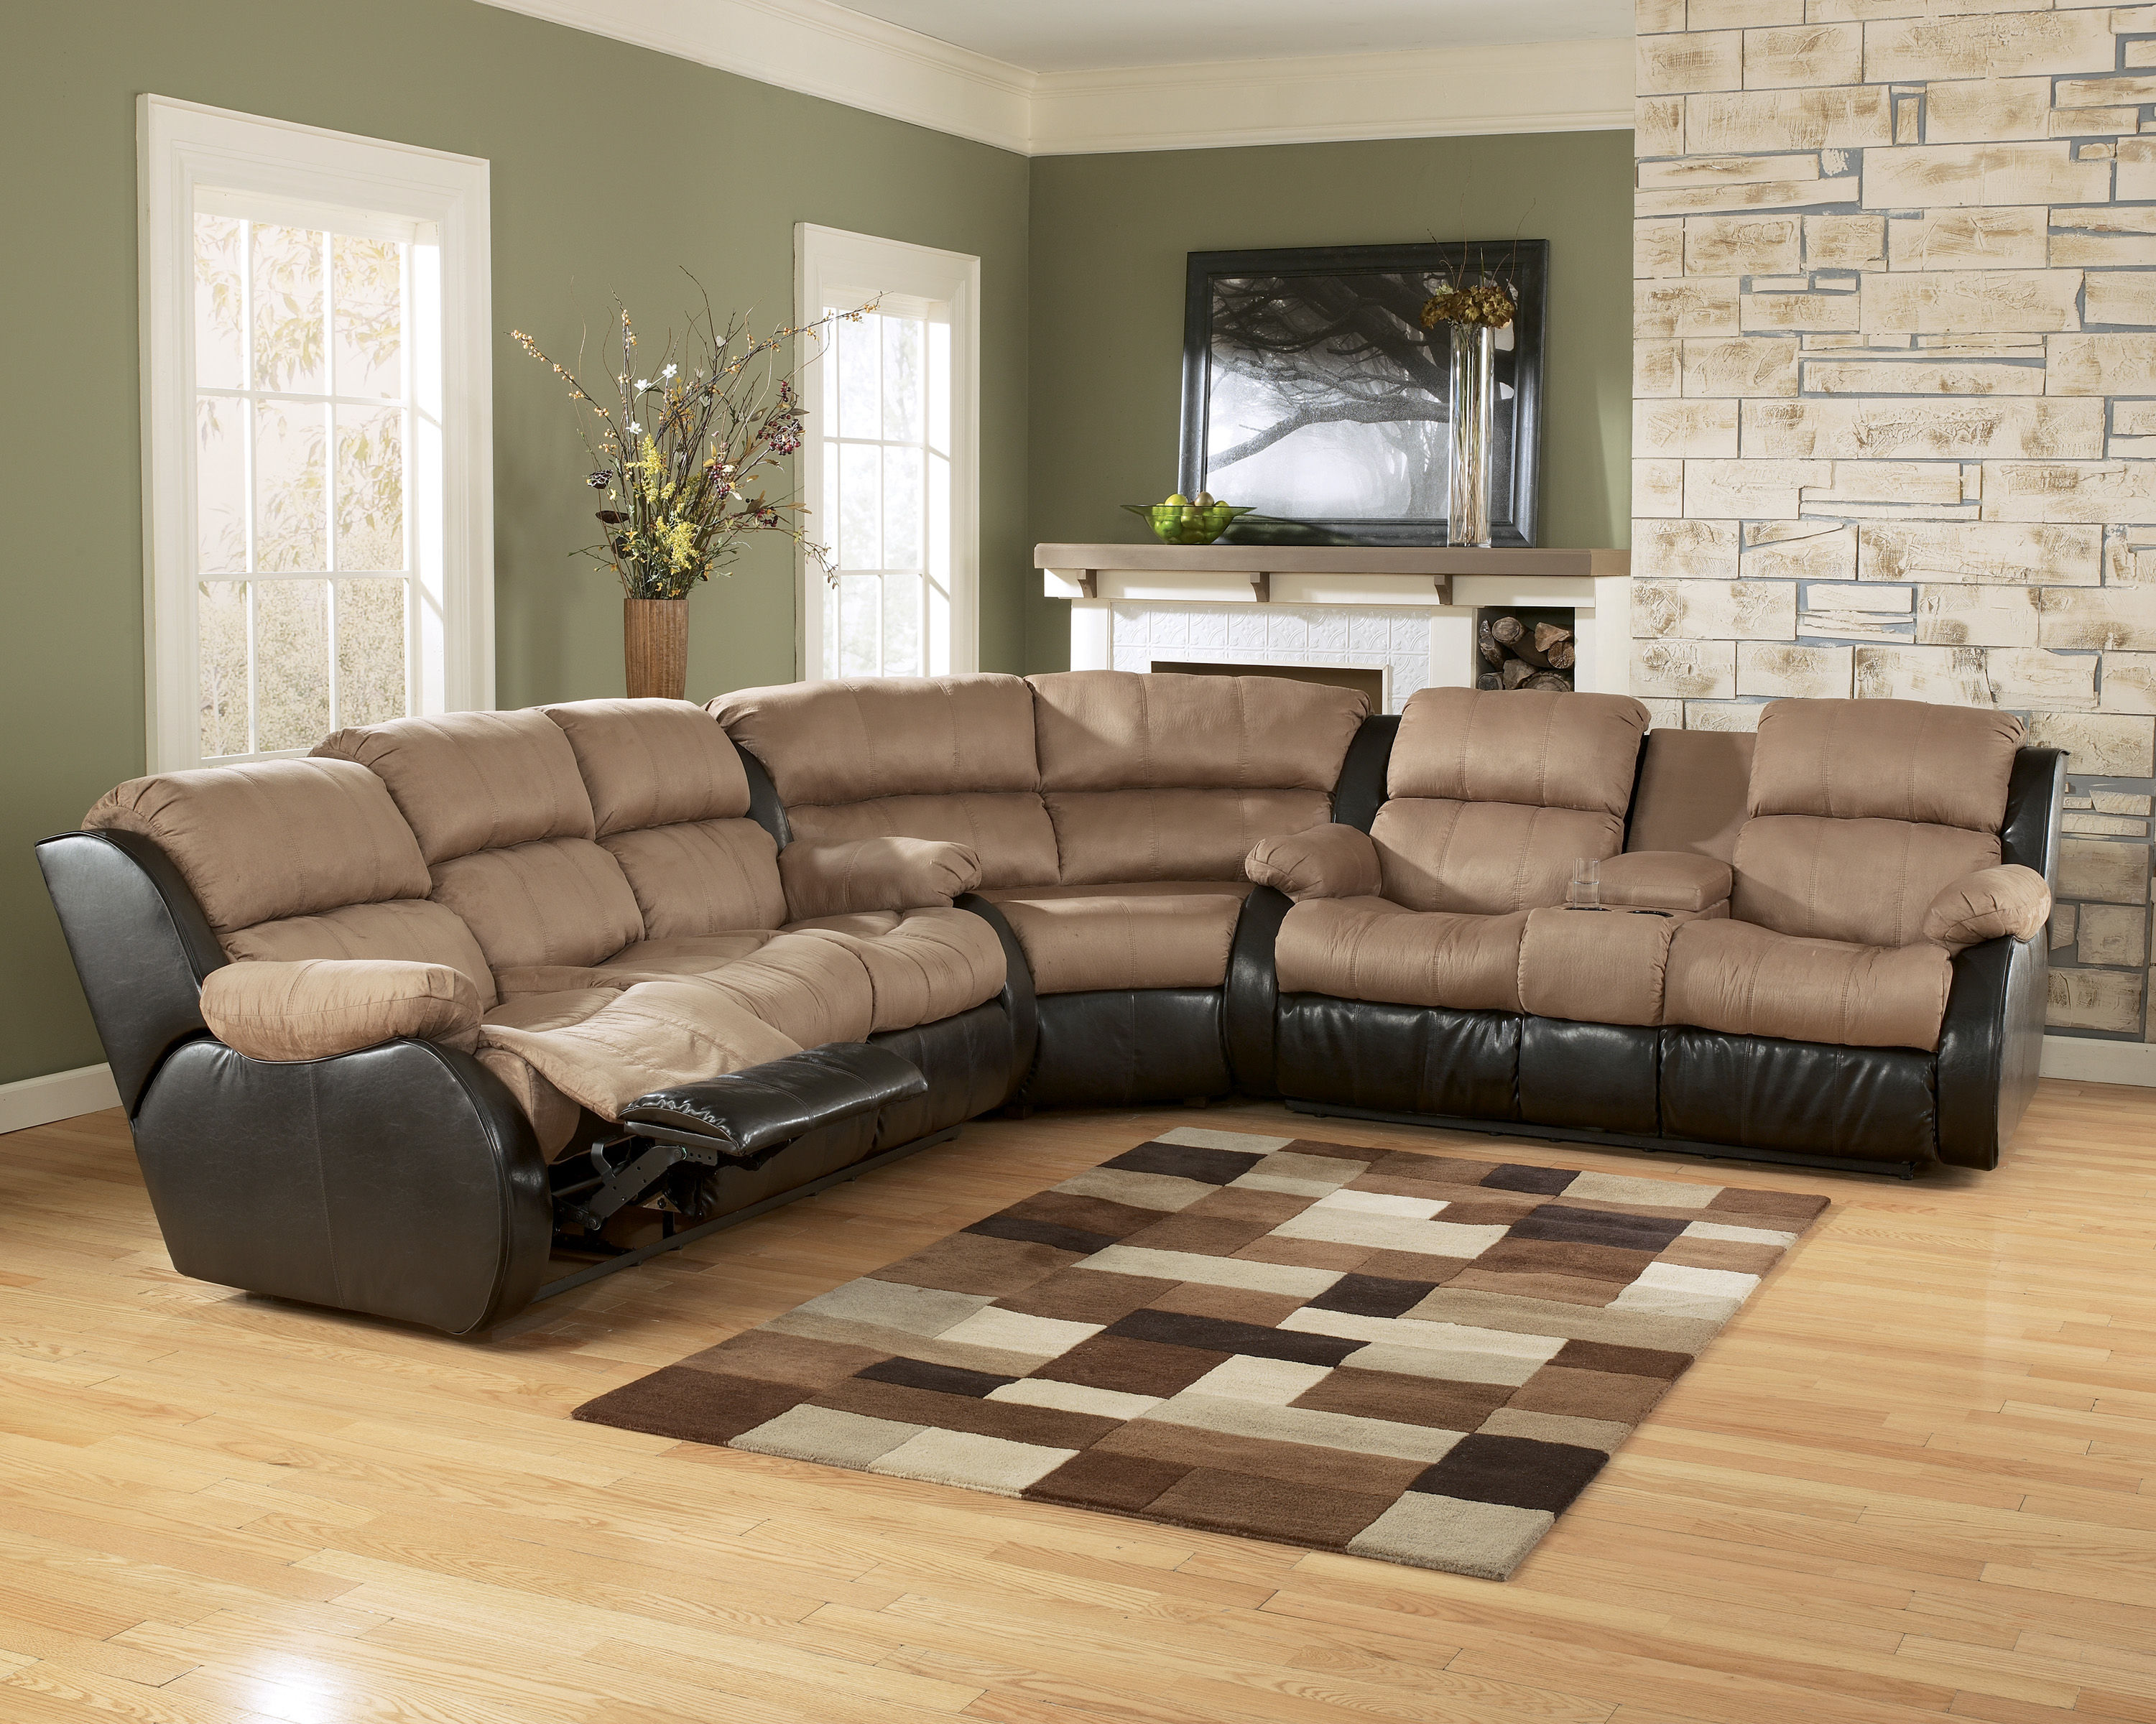 Presley - Cocoa Reclining Sectional w/ Sofa w/ DDT/Massage ...